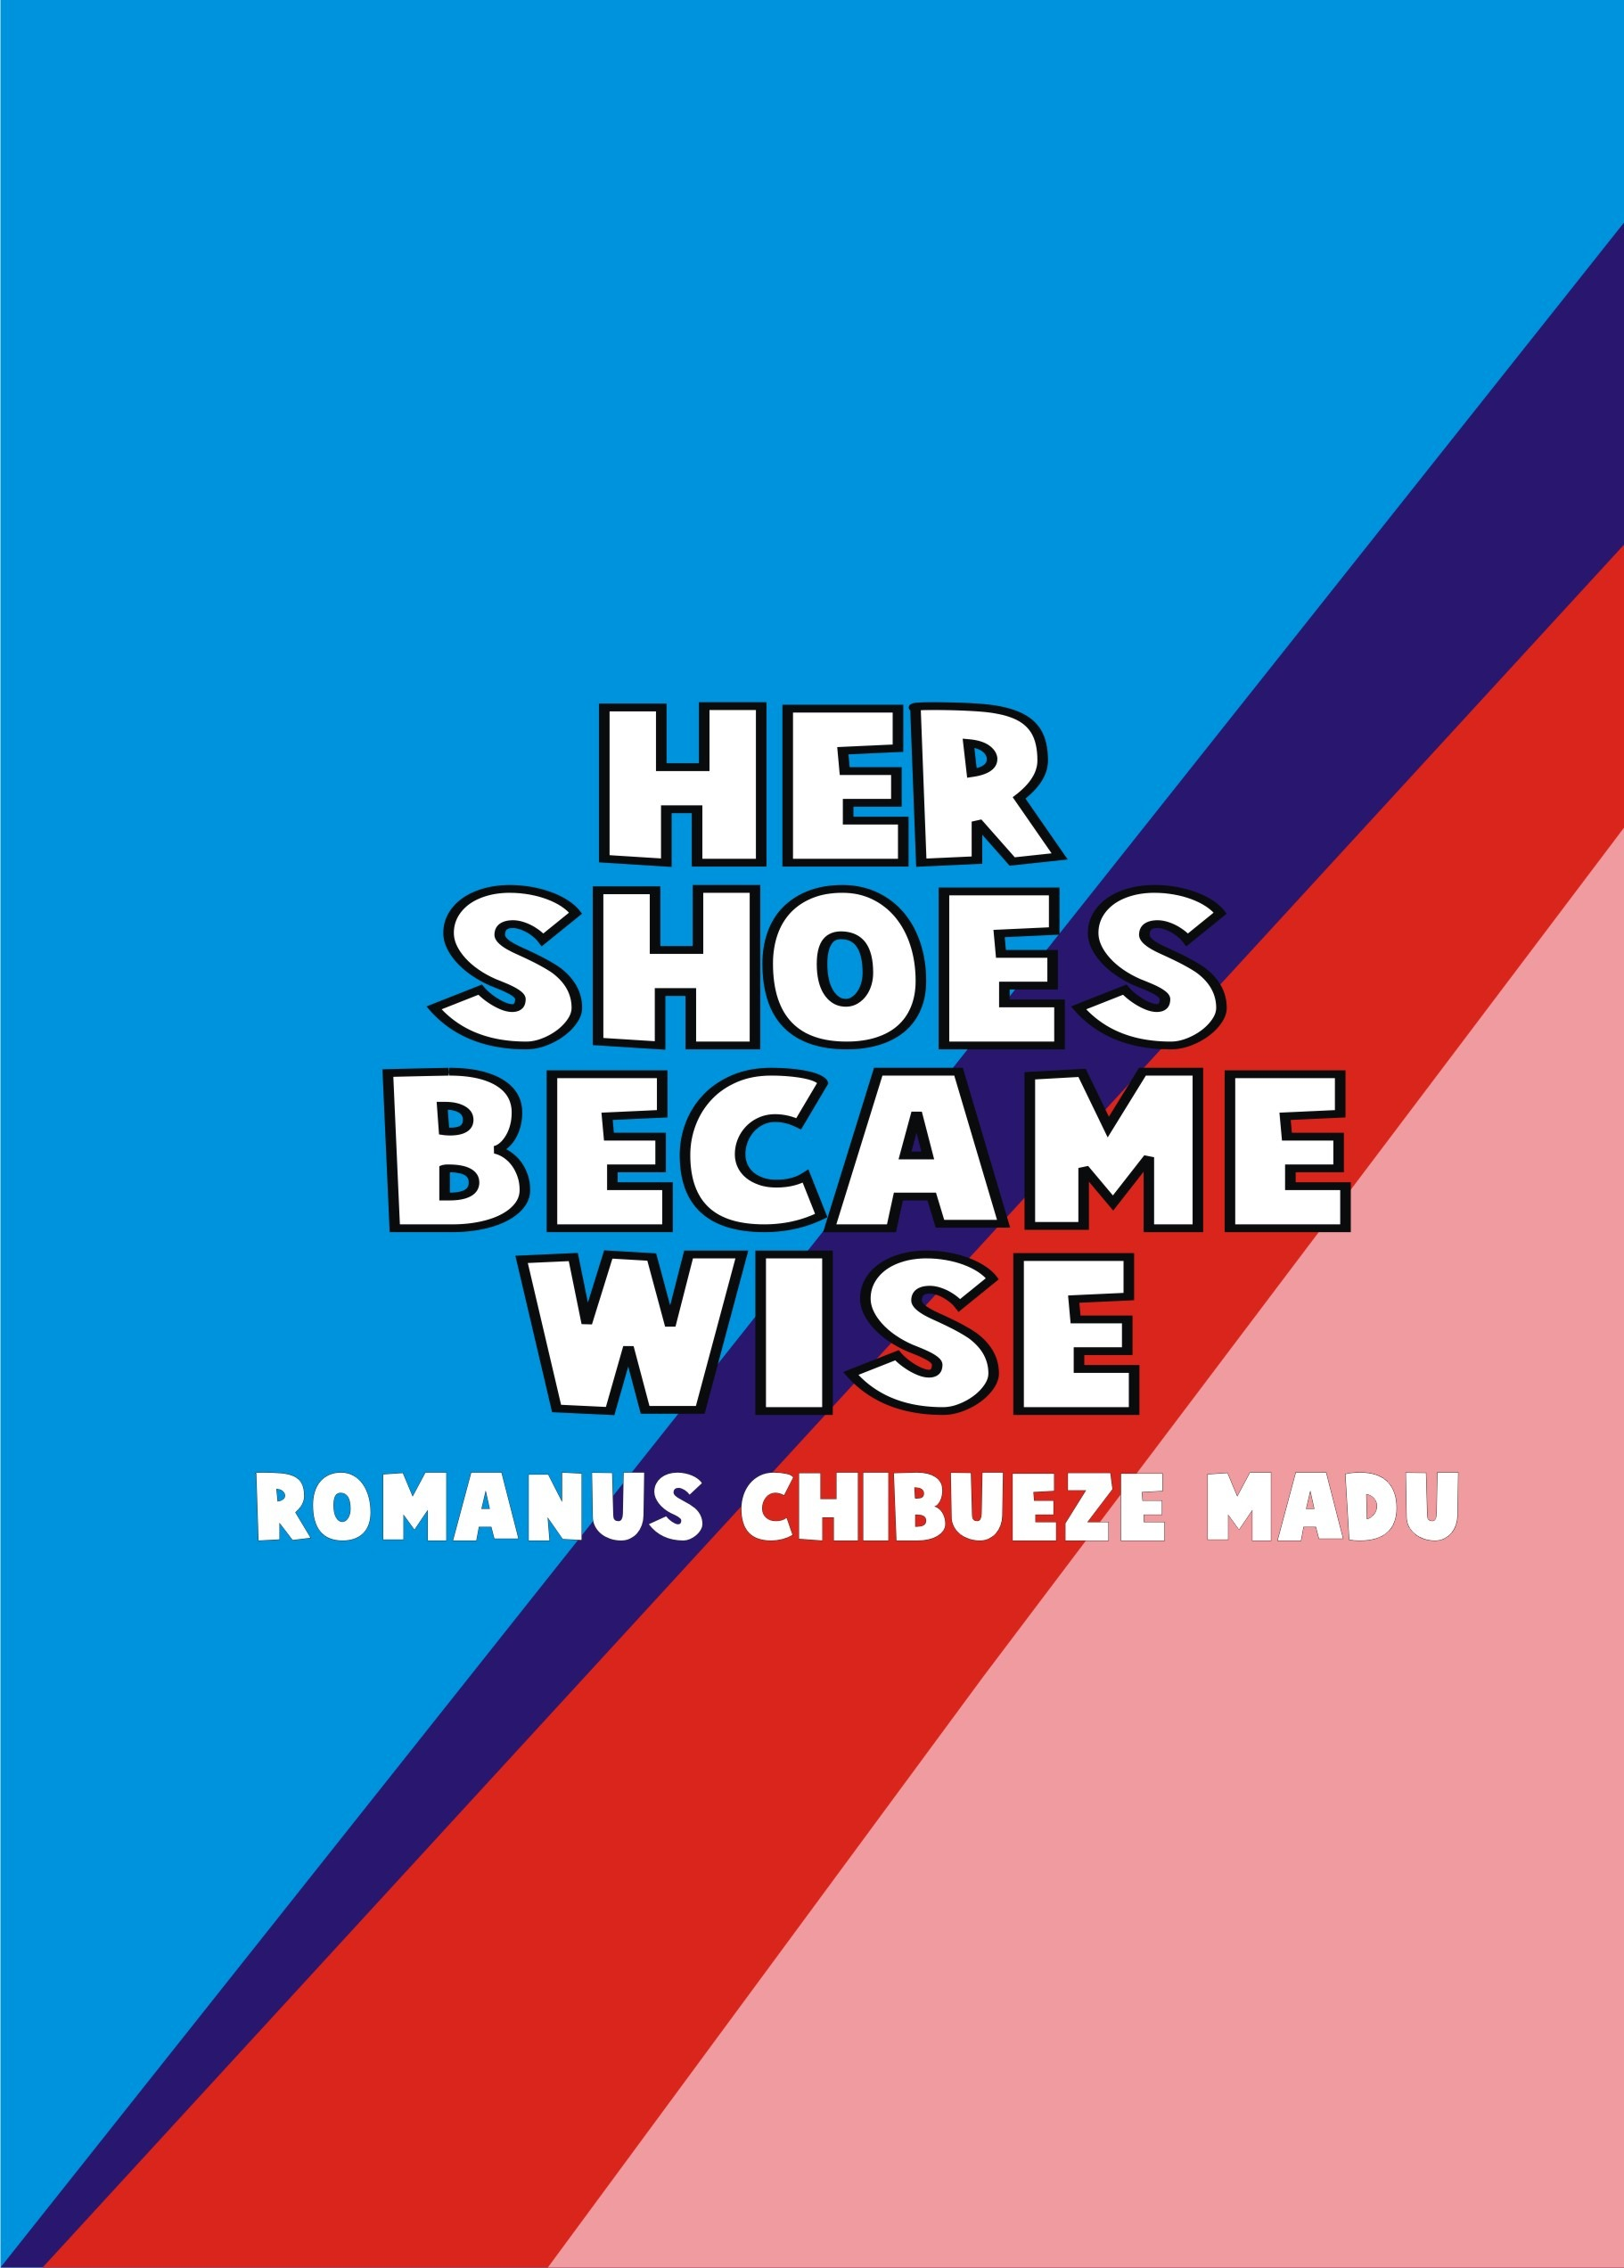 HER SHOES BECAME WISE